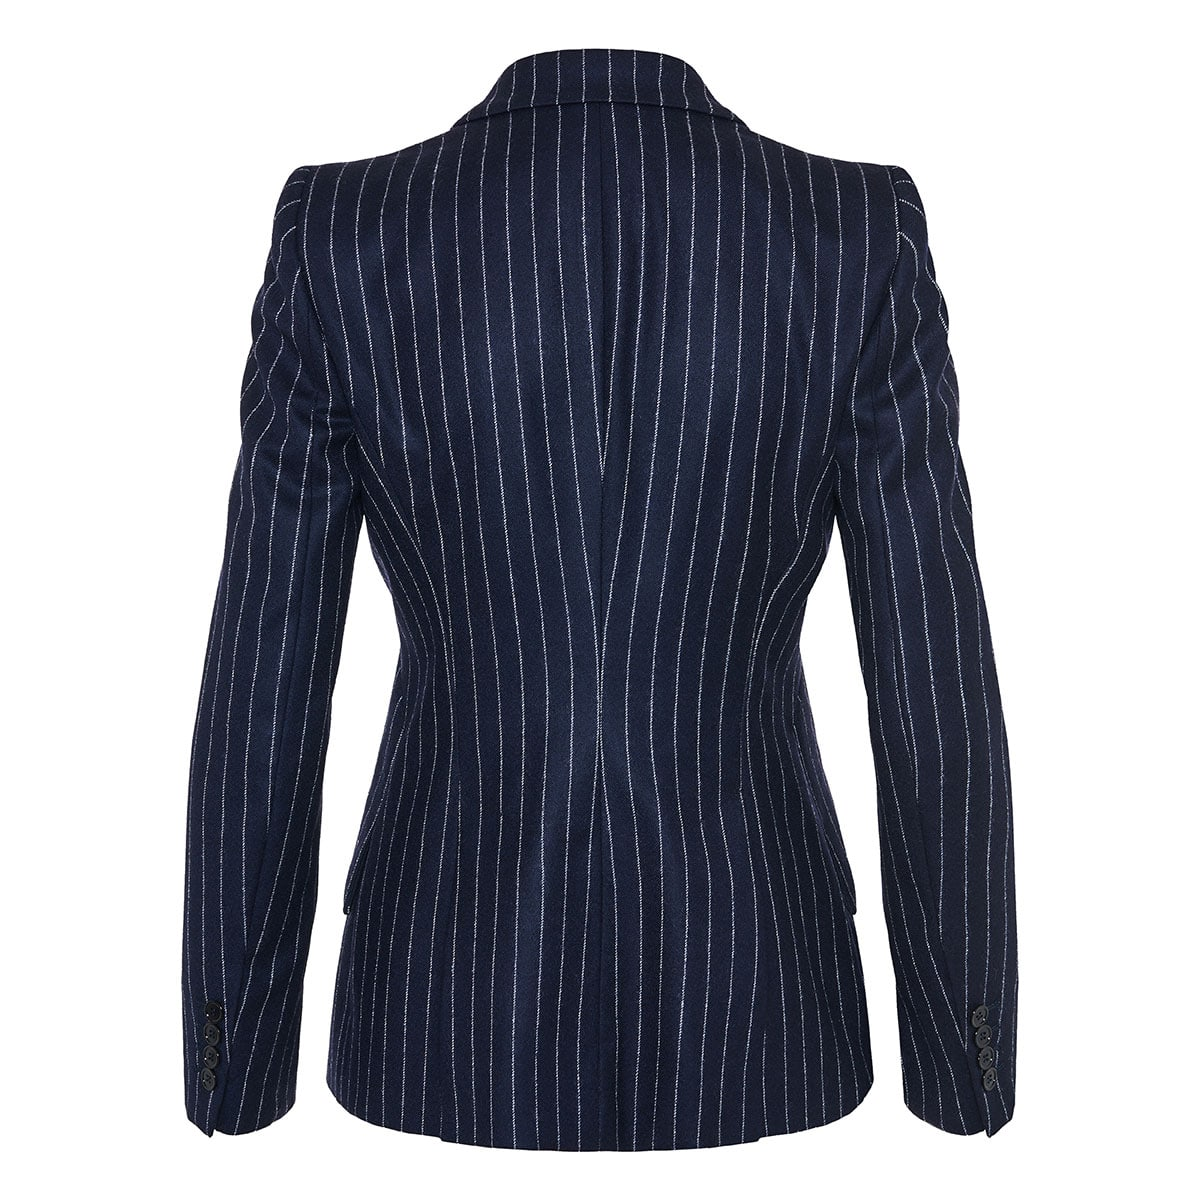 Single-breasted structured pinstripe blazer